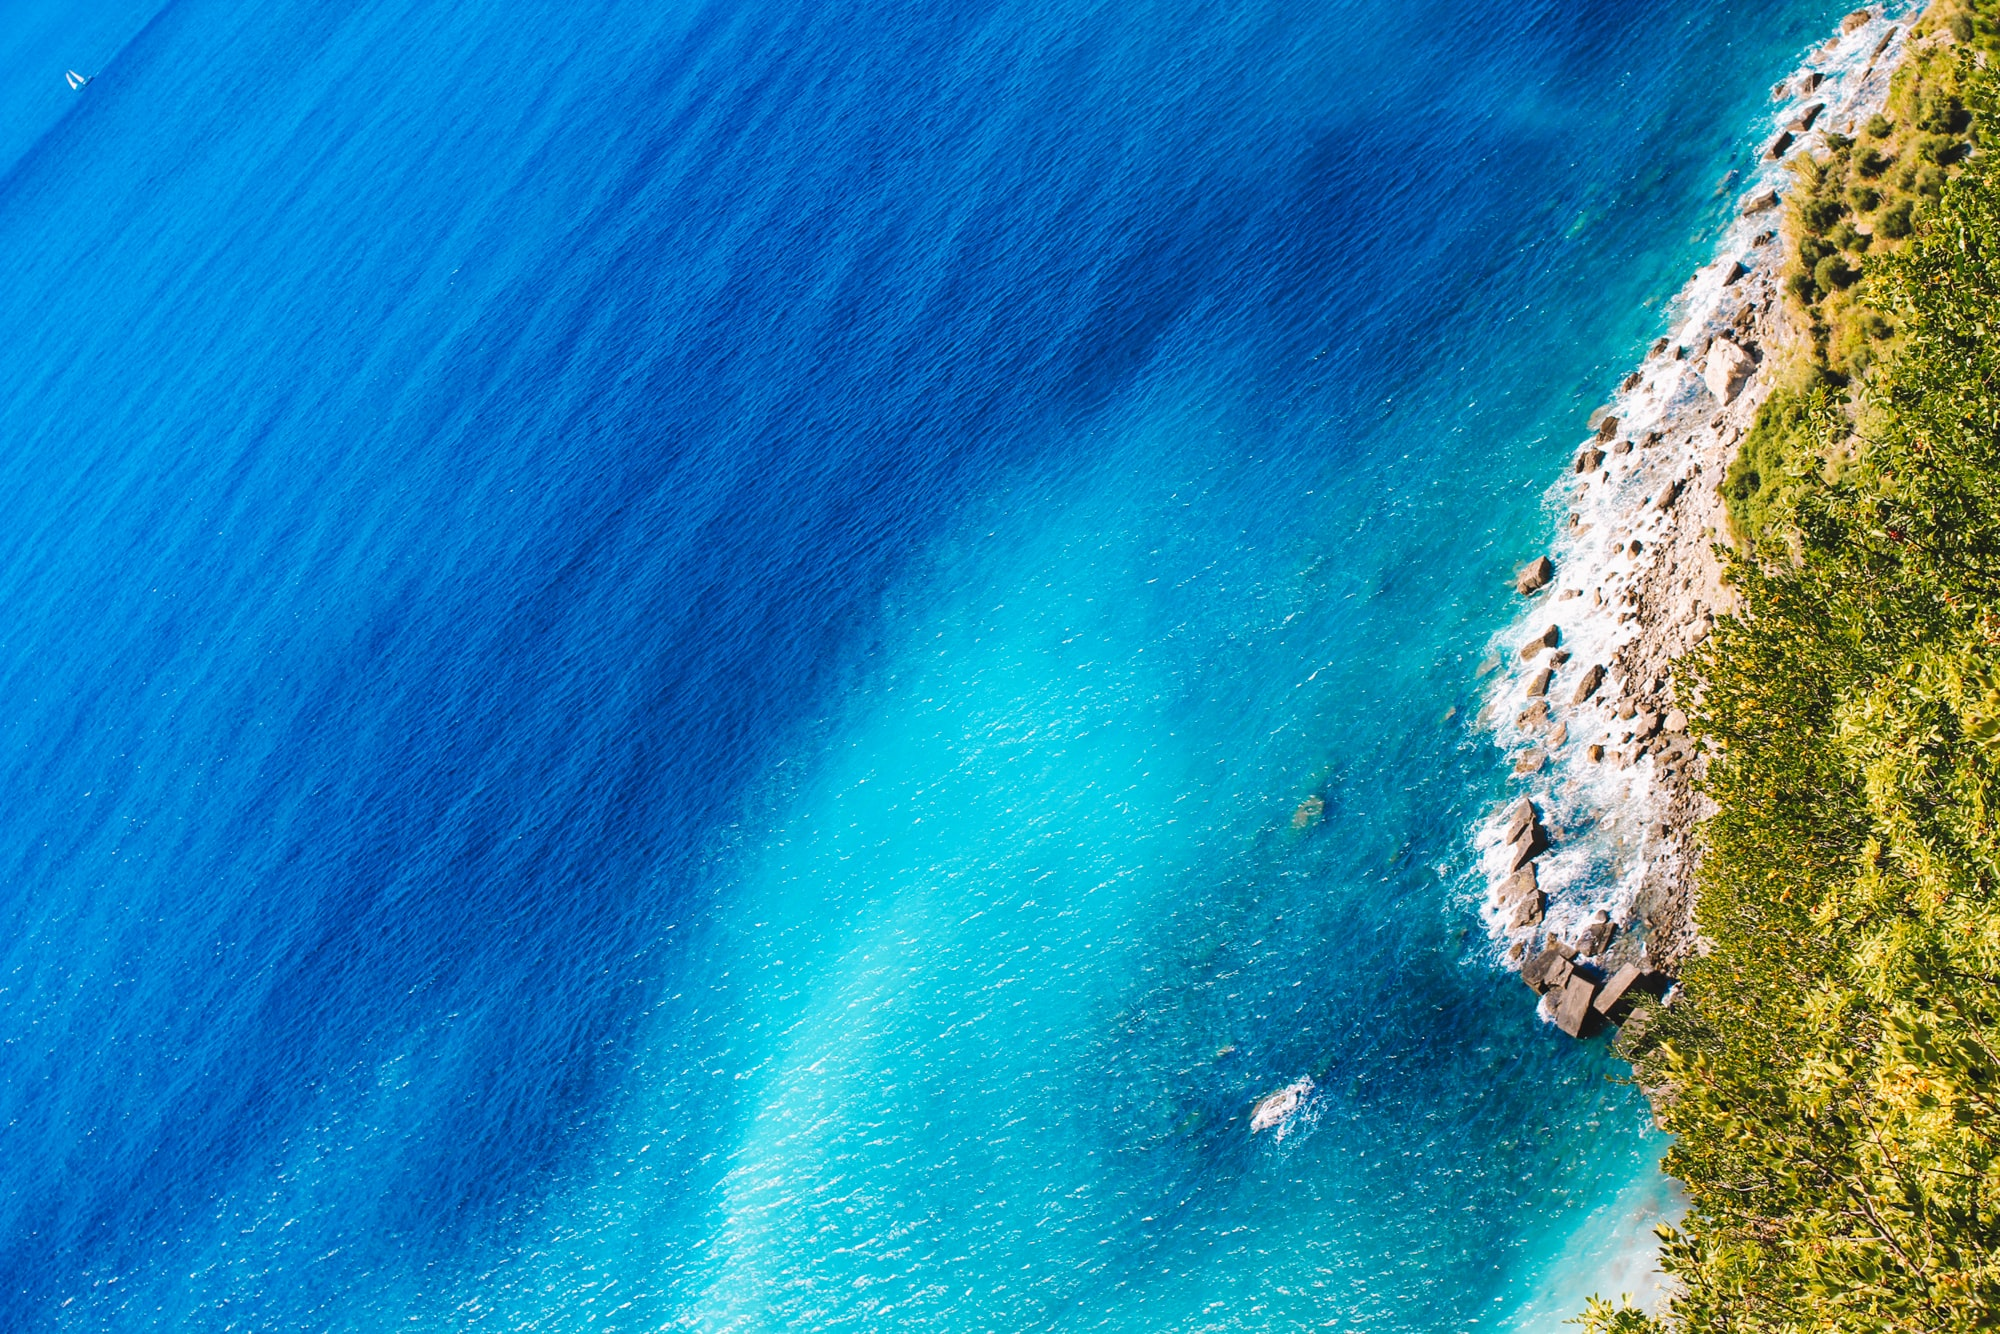 A drone shot of the deep blue sea and a rocky beach in Cinque Terre